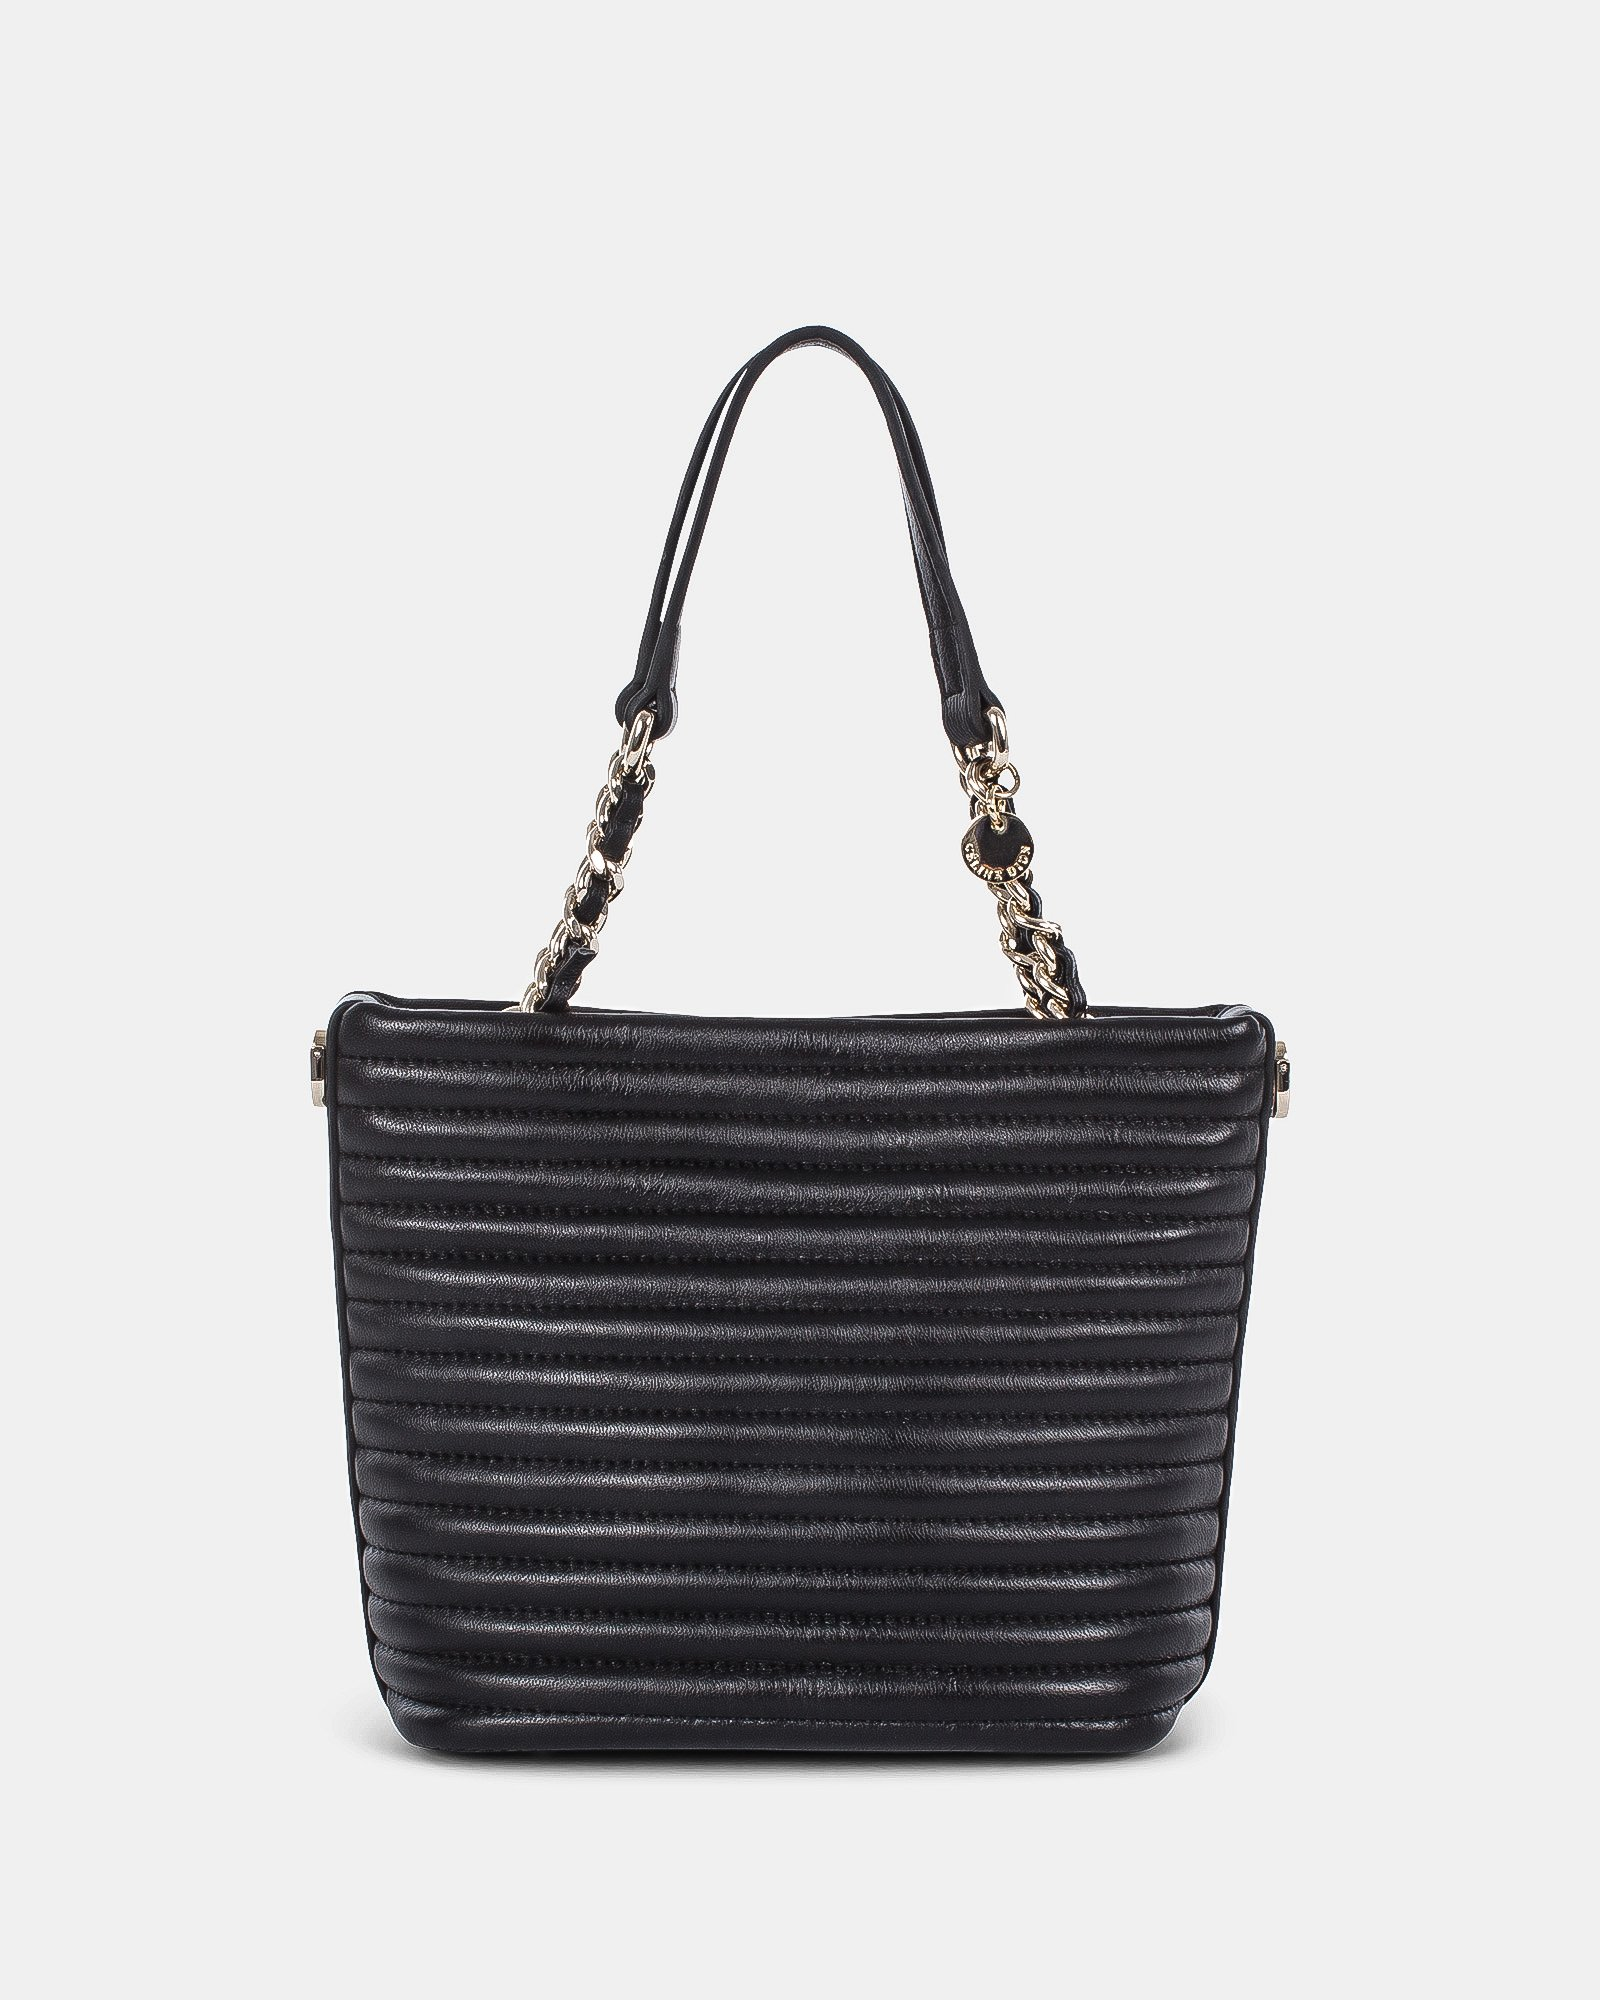 VIBRATO - Quilted LEATHER SATCHEL BAG with Adjustable & removable strap - BLACK - Céline Dion - Zoom